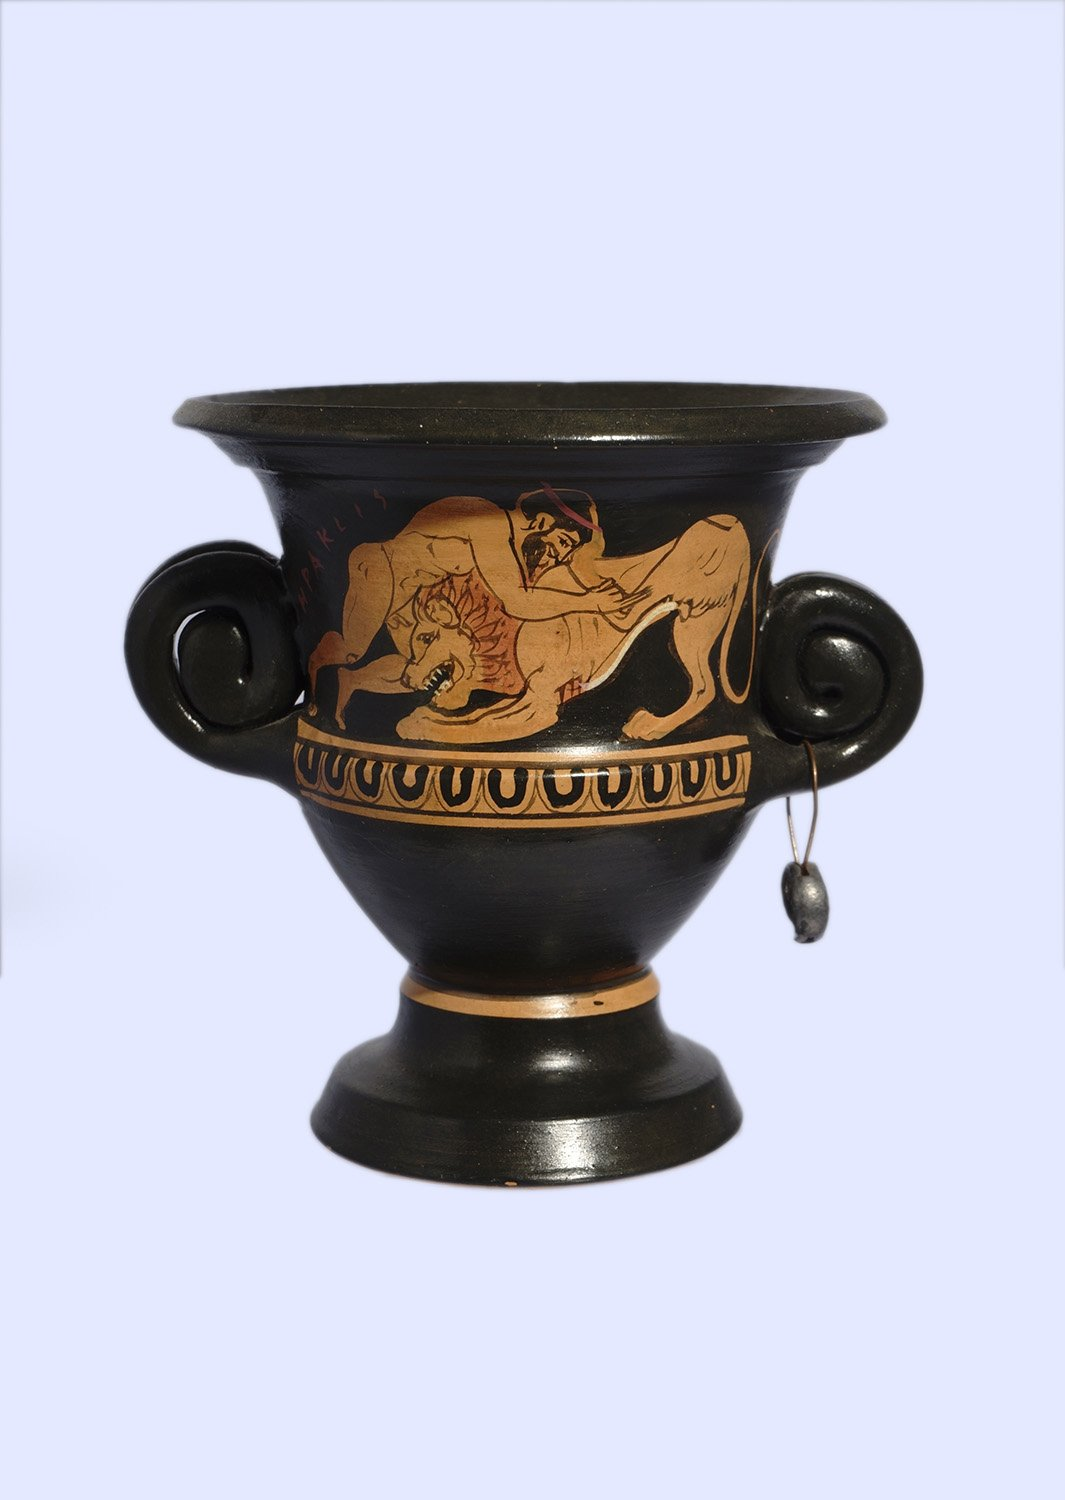 Classical red-figure crater with Hercules fighting with the Nemean lion